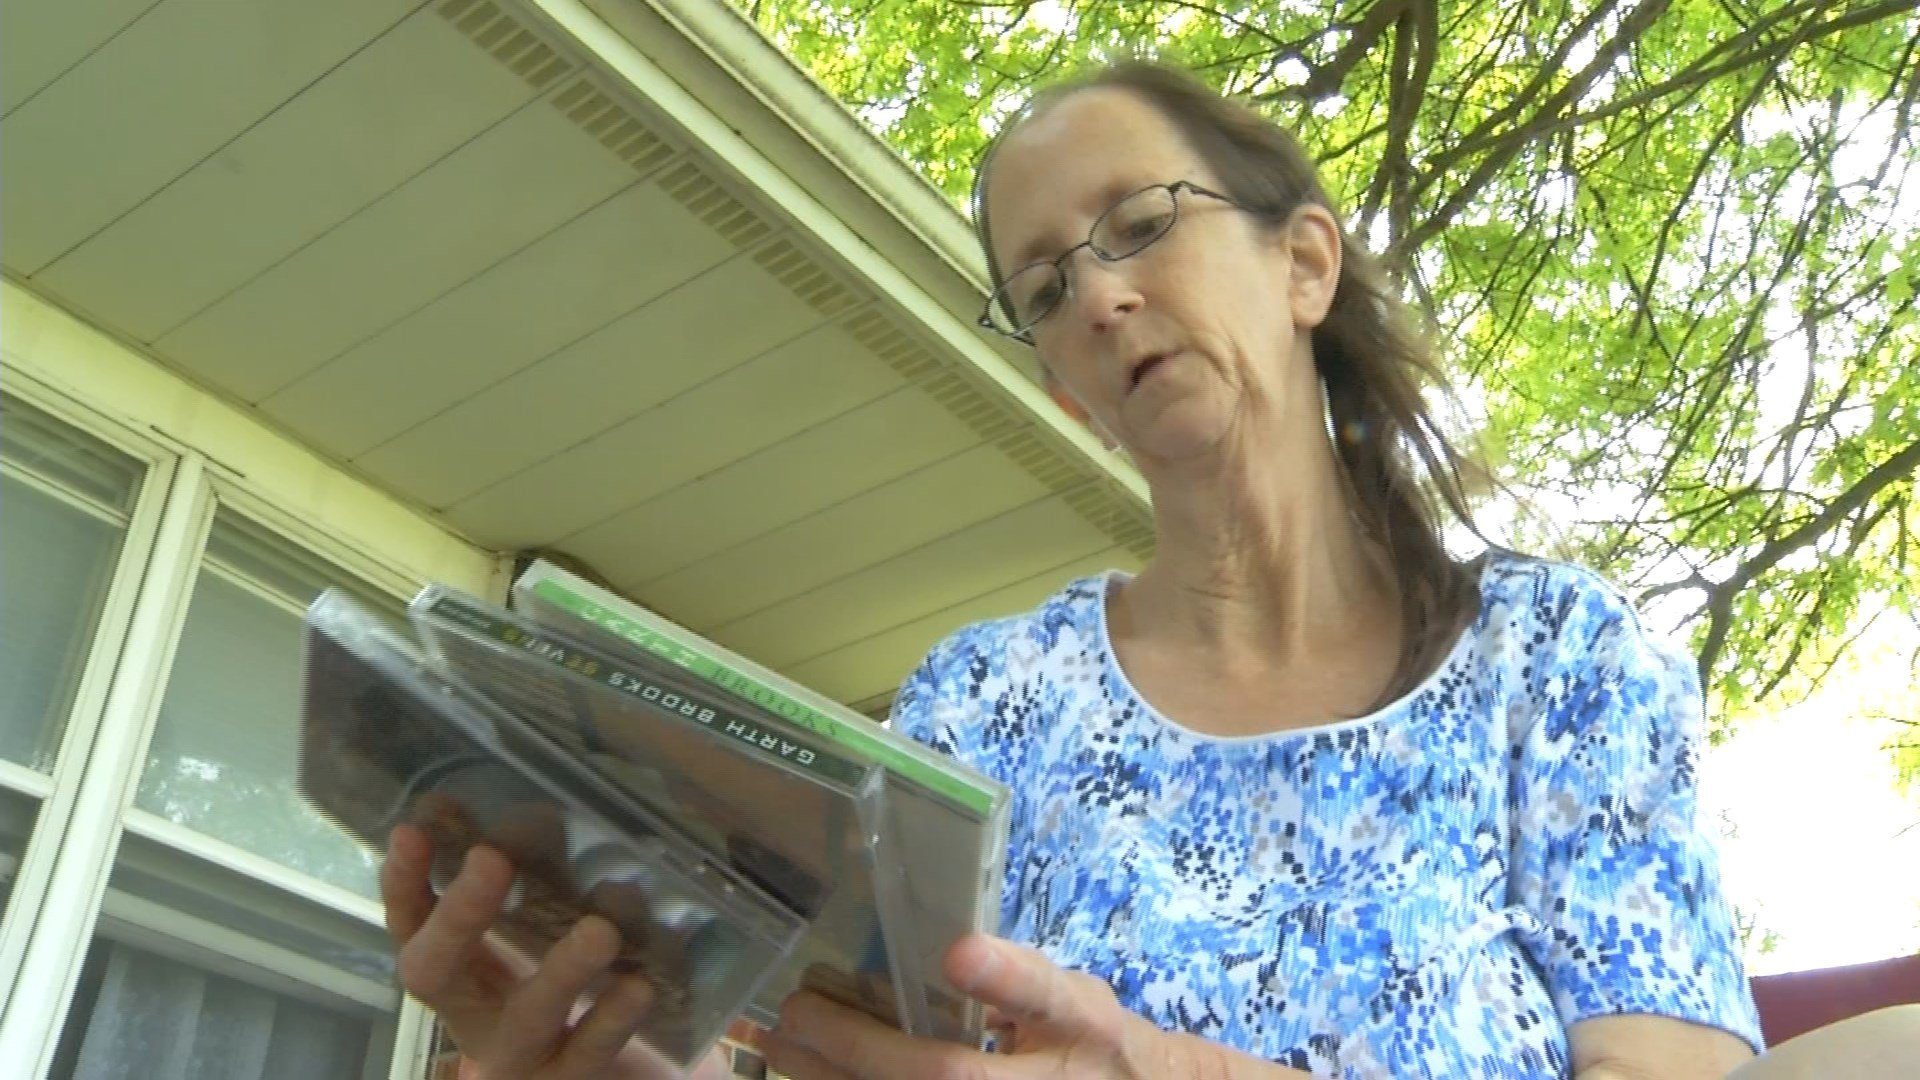 Last week, Shirley Brown opened an envelope containing the chance of a lifetime -tickets to see Brooks from her sister, Linda Cook. (KCTV5)